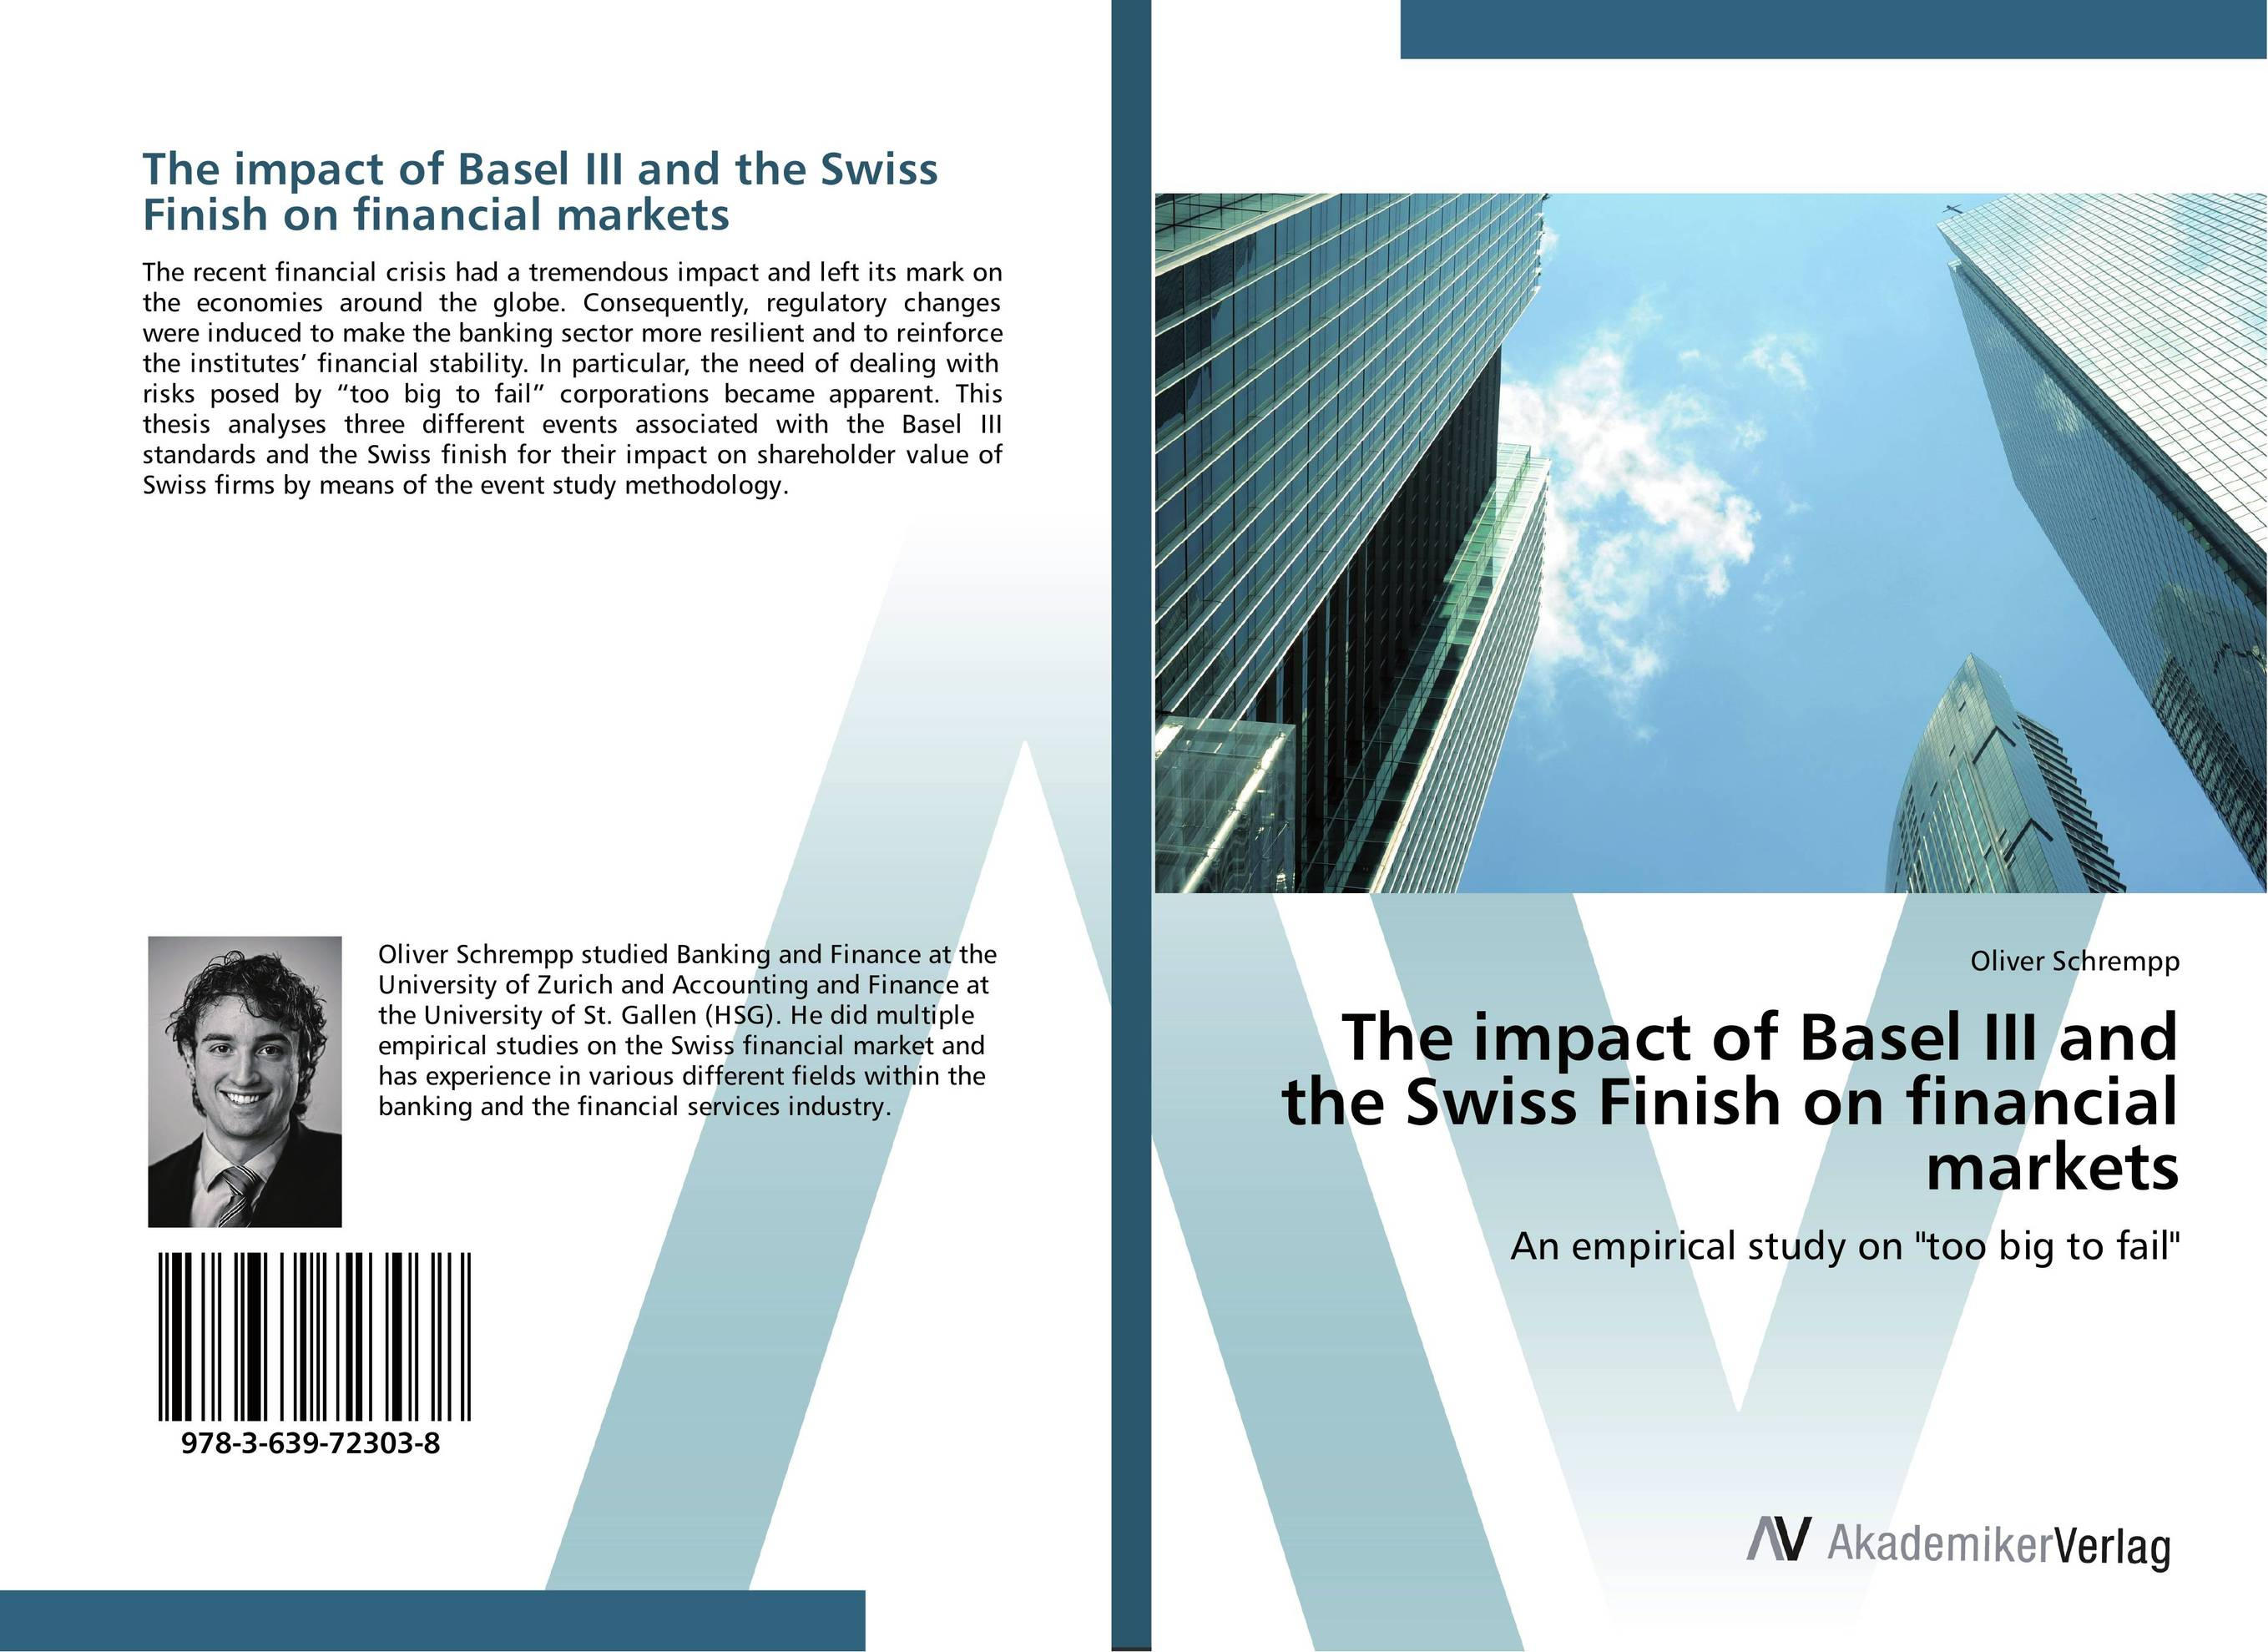 The impact of Basel III and the Swiss Finish on financial markets evaluation of the impact of a mega sporting event